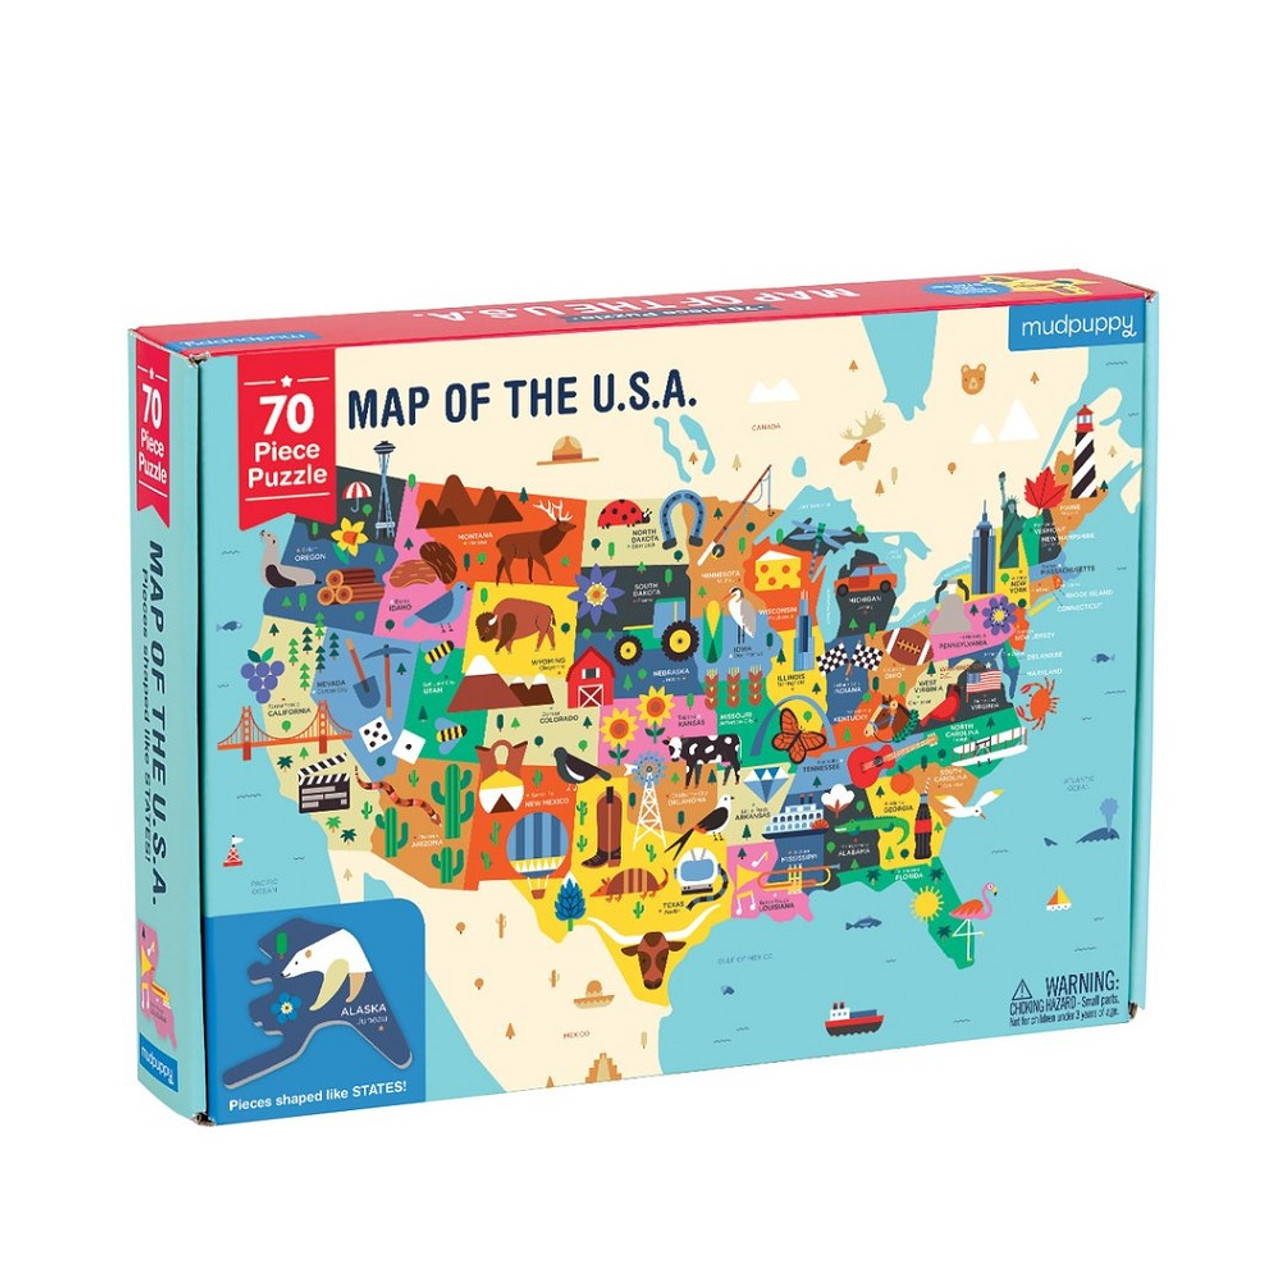 Map of the U.S.A. Puzzle - Detroit Insute of Arts Museum Shop Detroit Insute Of Arts Map on